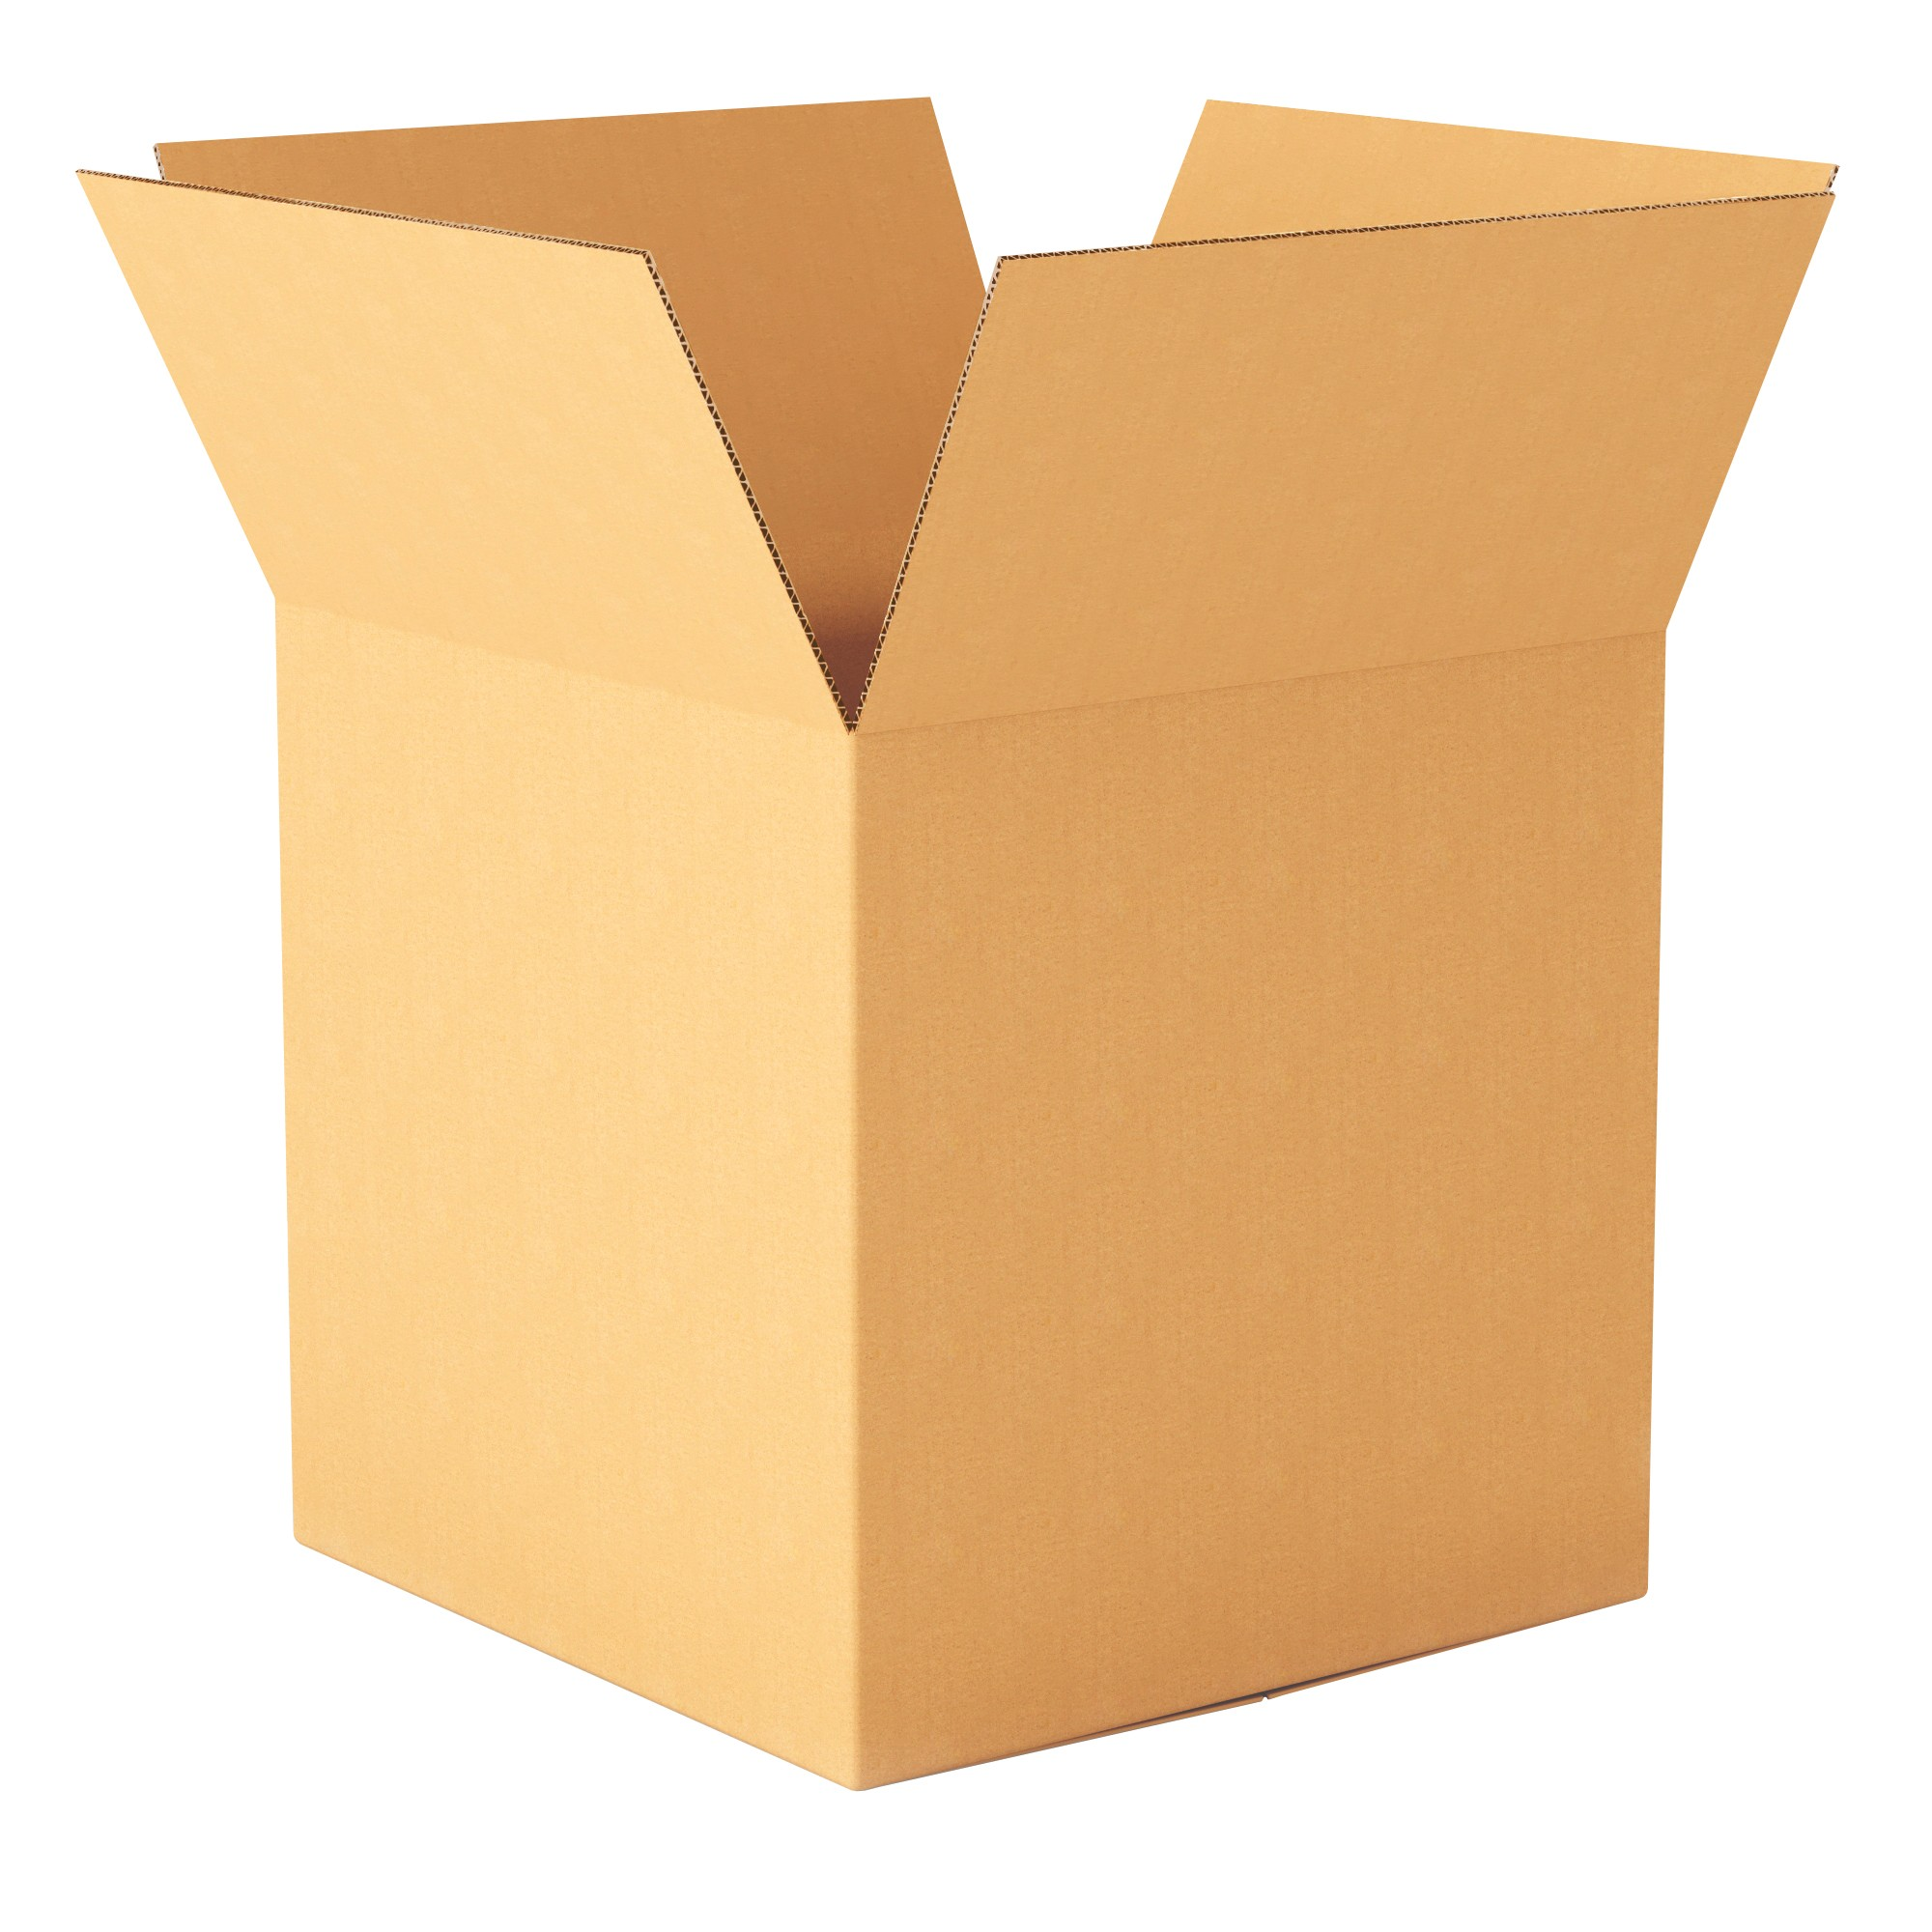 """TOTALPACK® 18 x 18 x 18"""" Single Wall Corrugated Boxes 15 Units"""